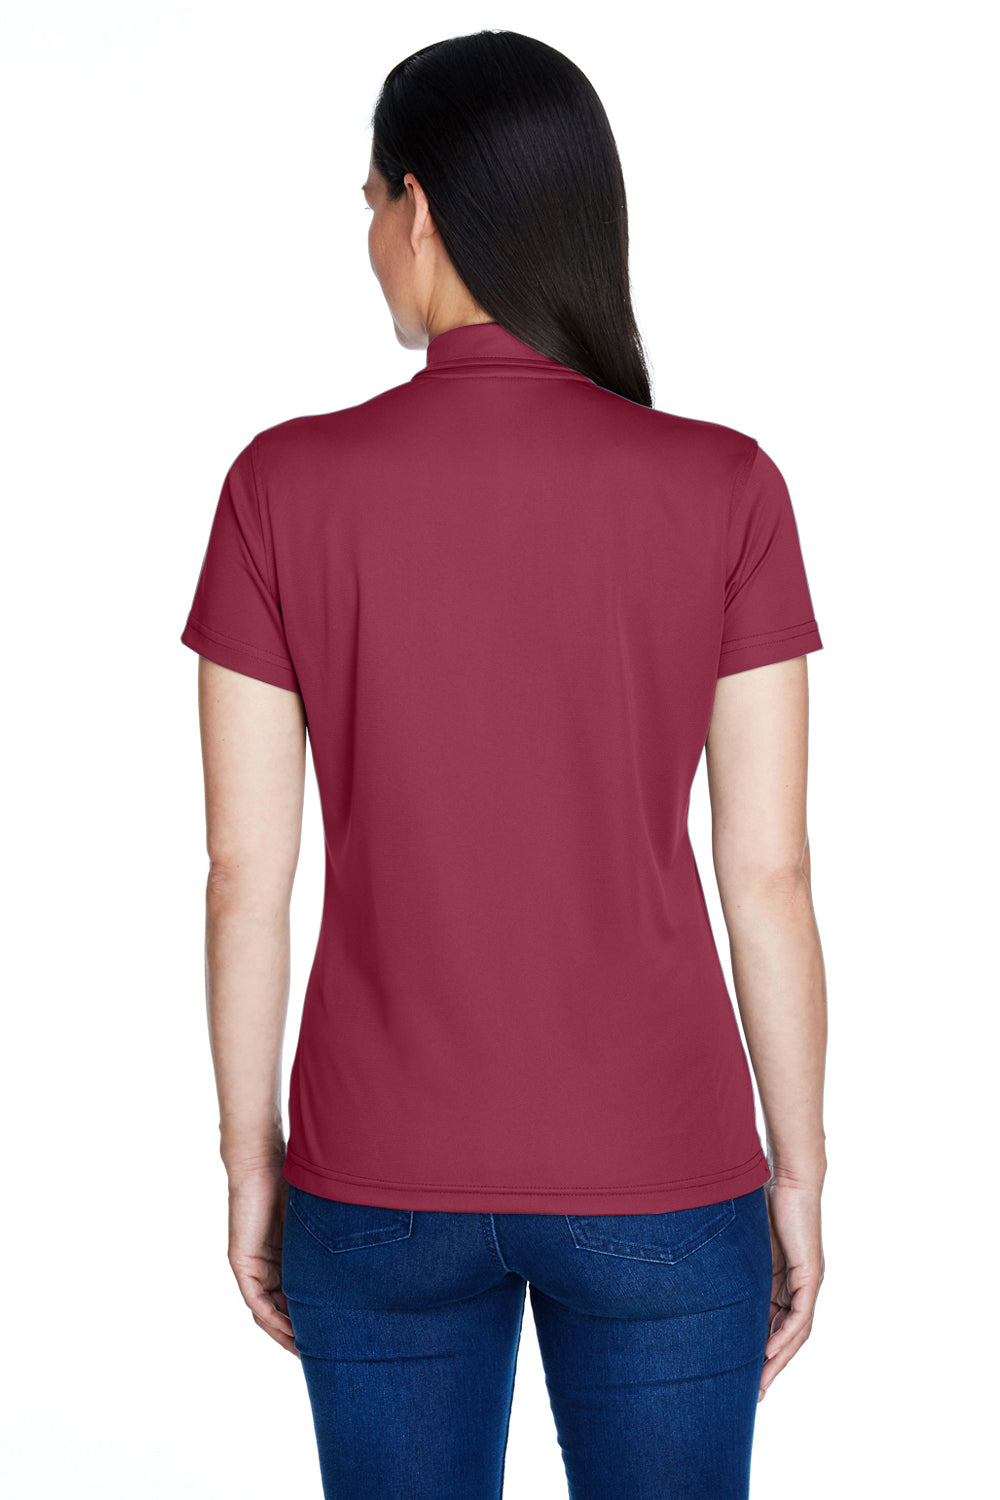 Team 365 TT21W Womens Command Performance Moisture Wicking Short Sleeve Polo Shirt Maroon Back